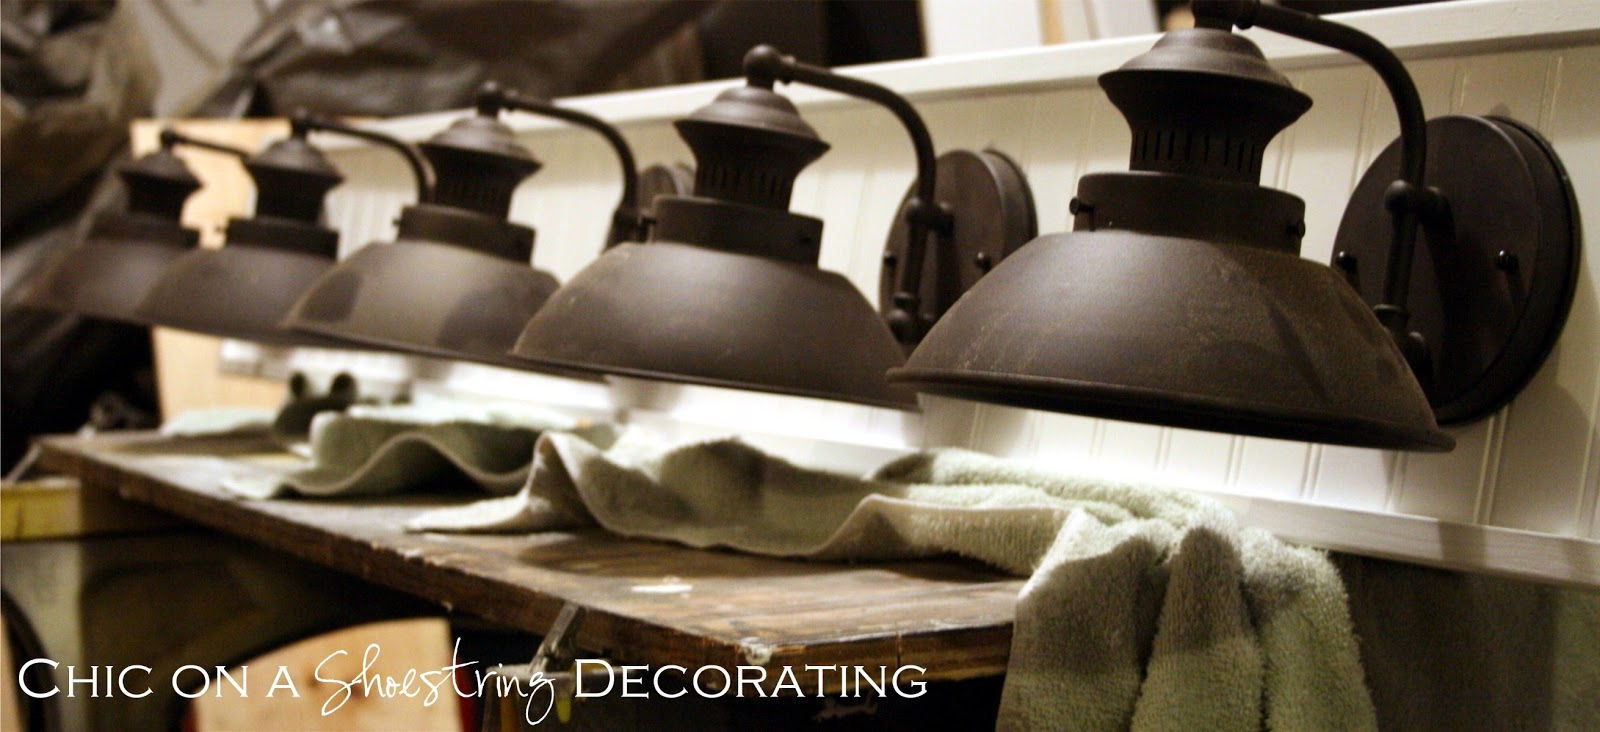 Chic On A Shoestring Decorating How To Build A Bathroom